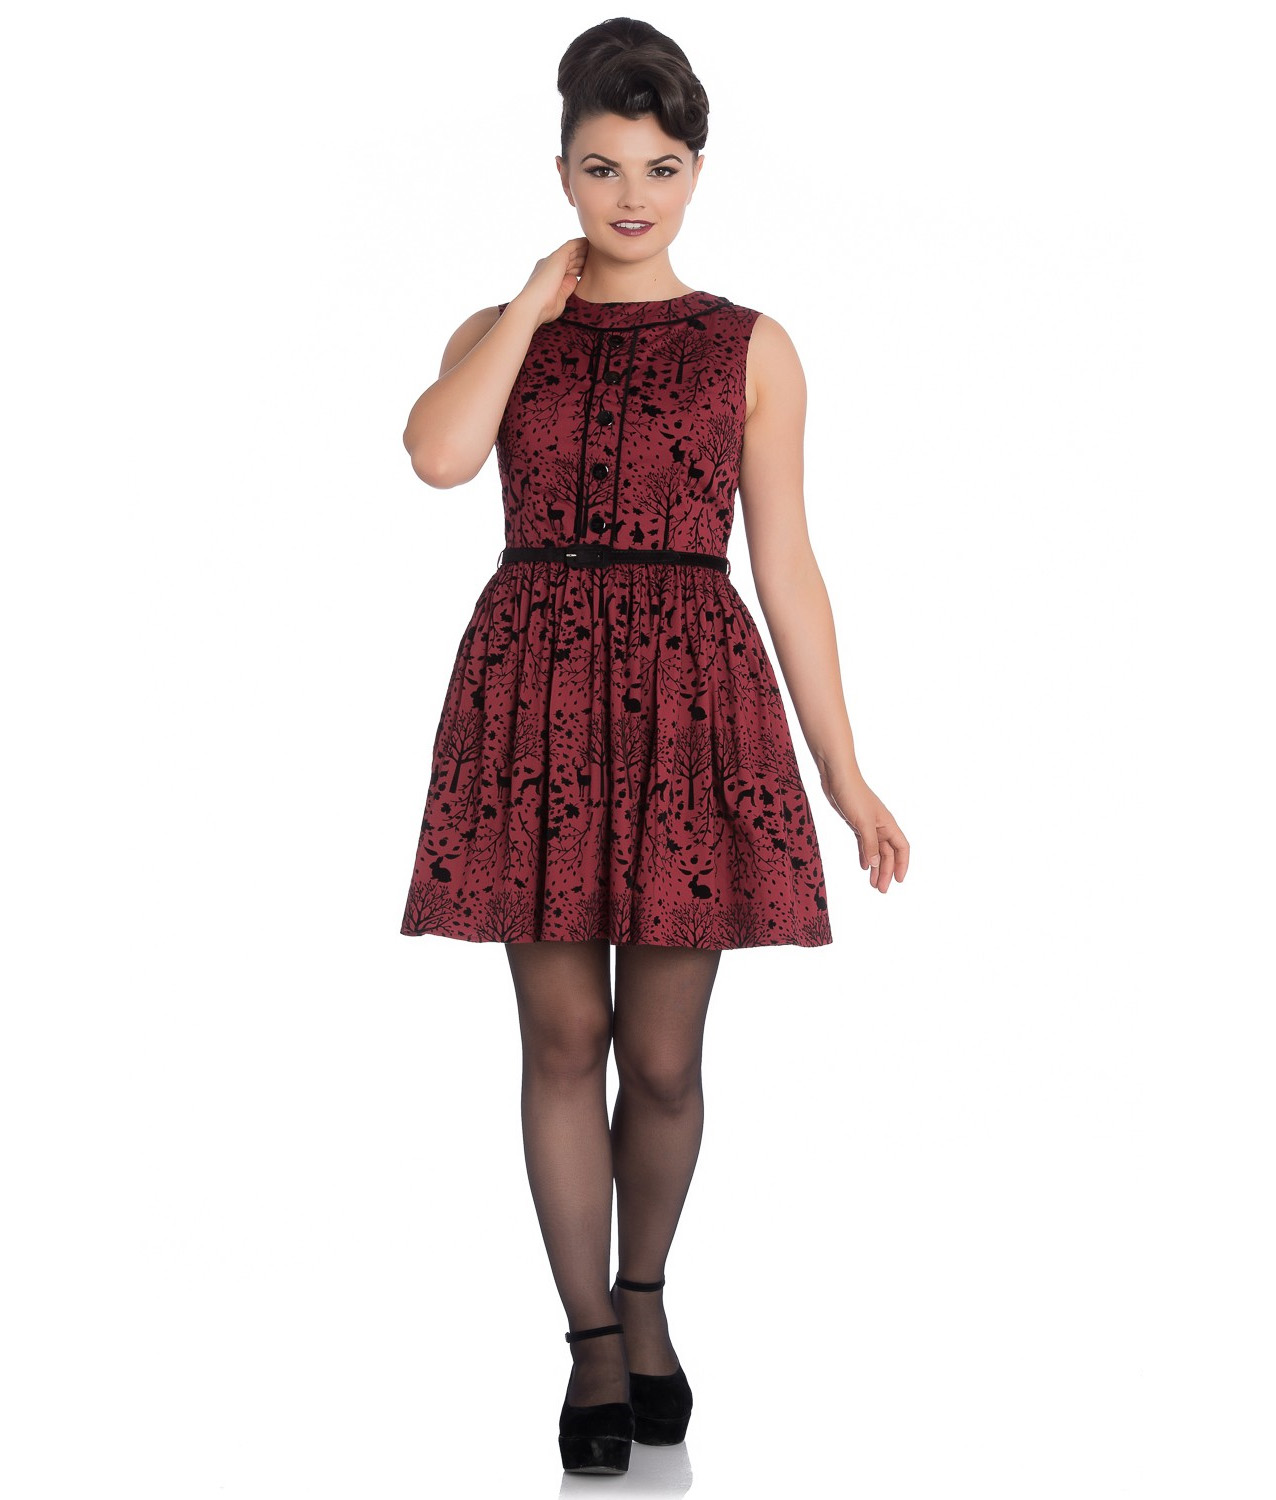 Hell-Bunny-50s-Mini-Skater-Dress-Woodland-Trees-SHERWOOD-Black-Red-All-Sizes thumbnail 15